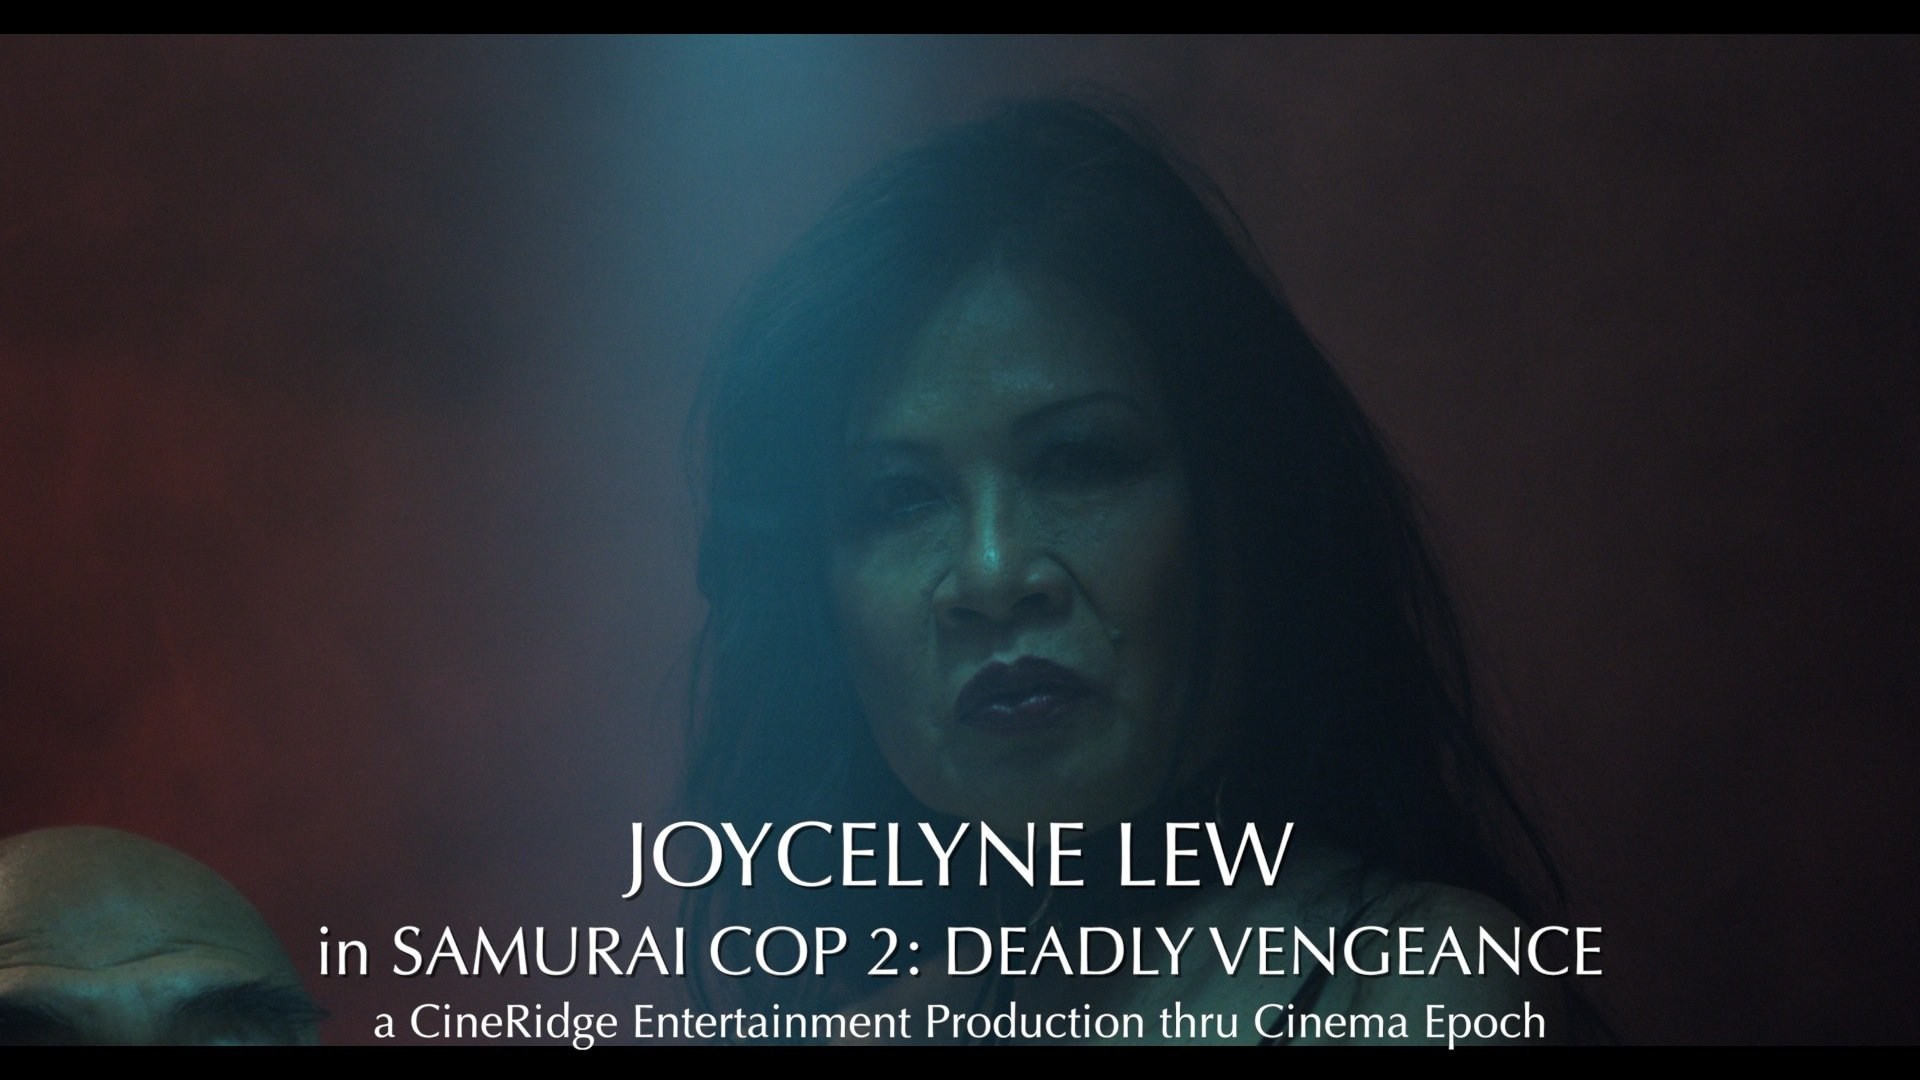 Joycelyne Lew in SAMURAI COP 2: DEADLY VENGEANCE